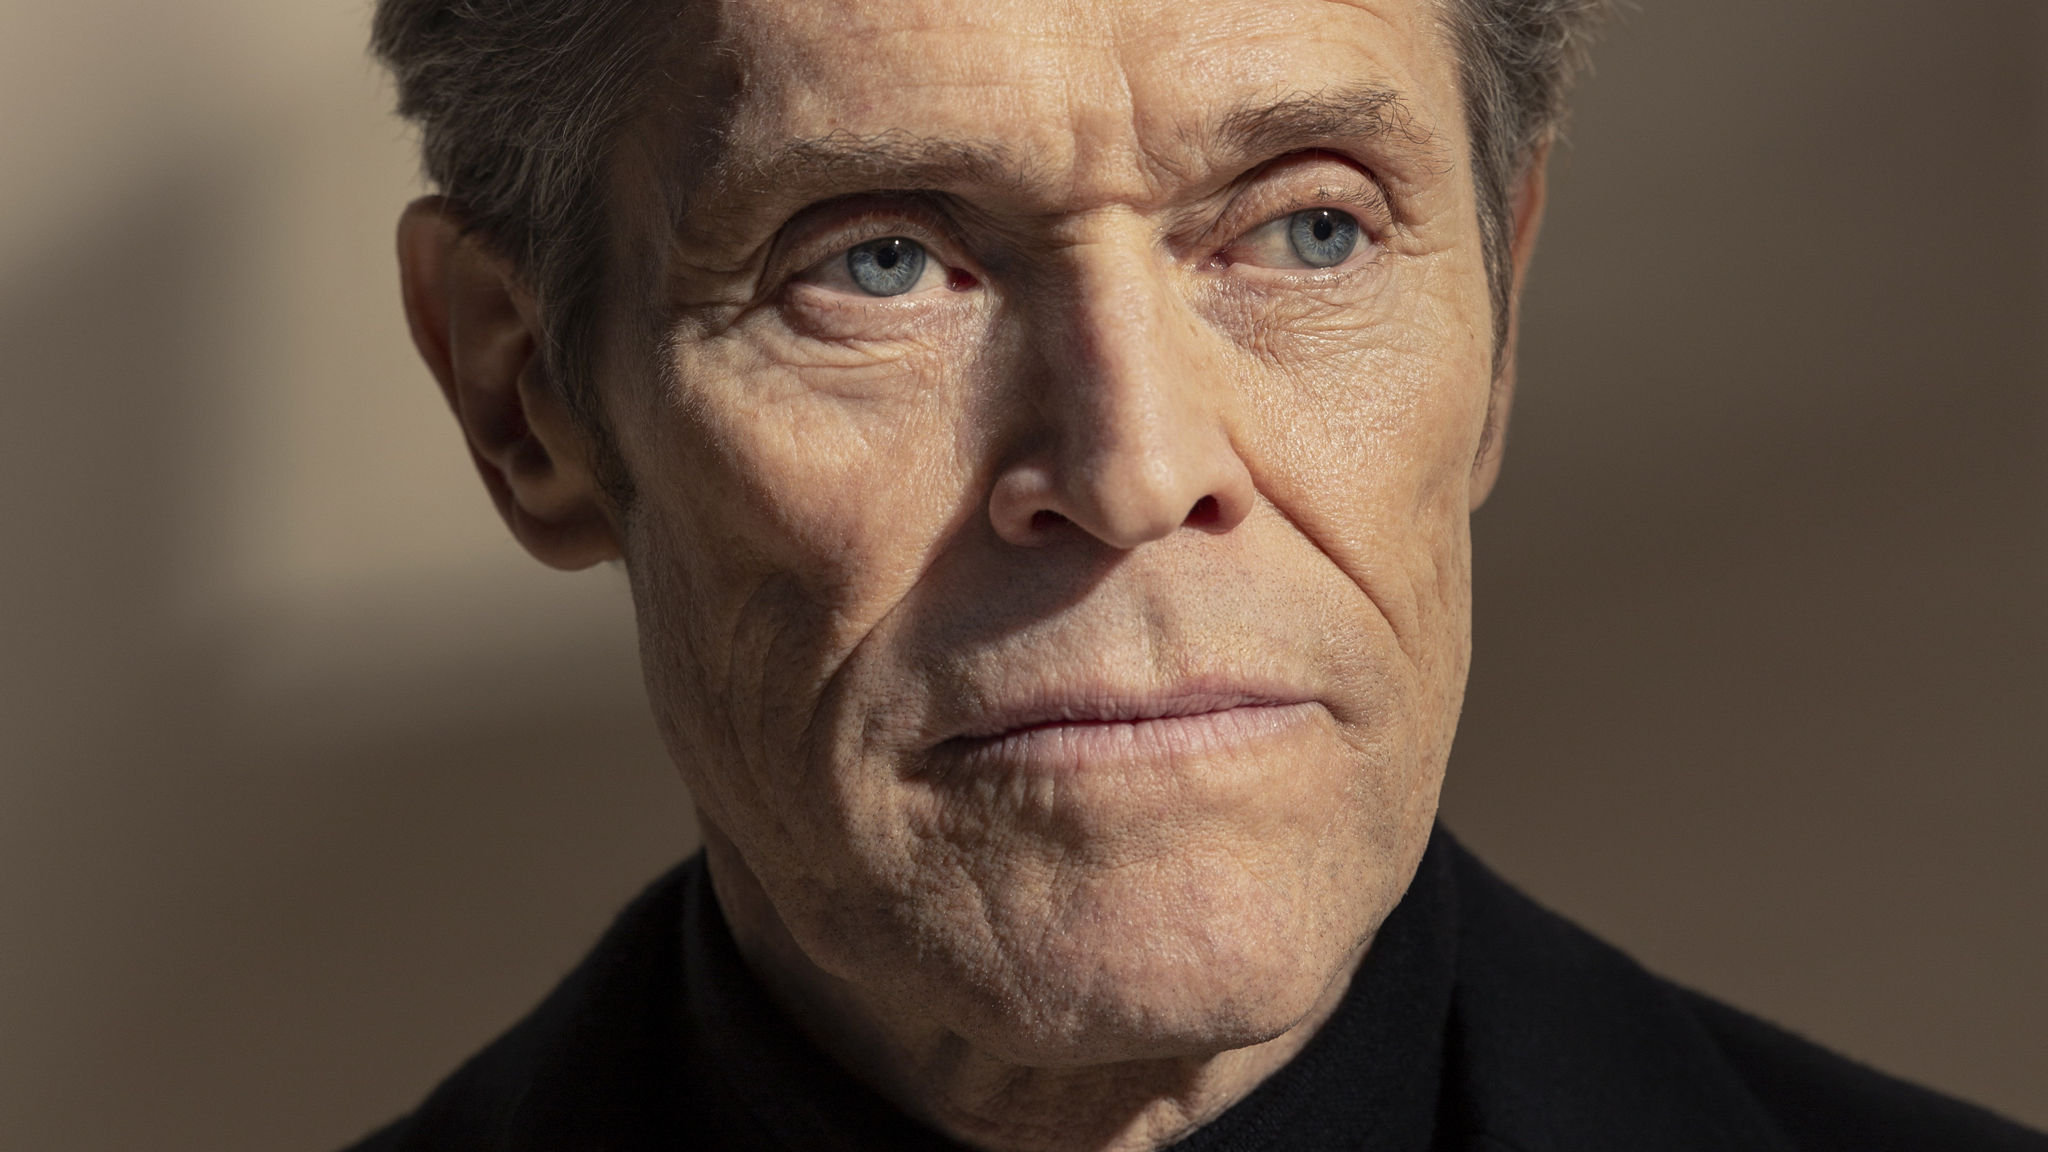 Willem Dafoe on tormenting Robert Pattinson in The Lighthouse